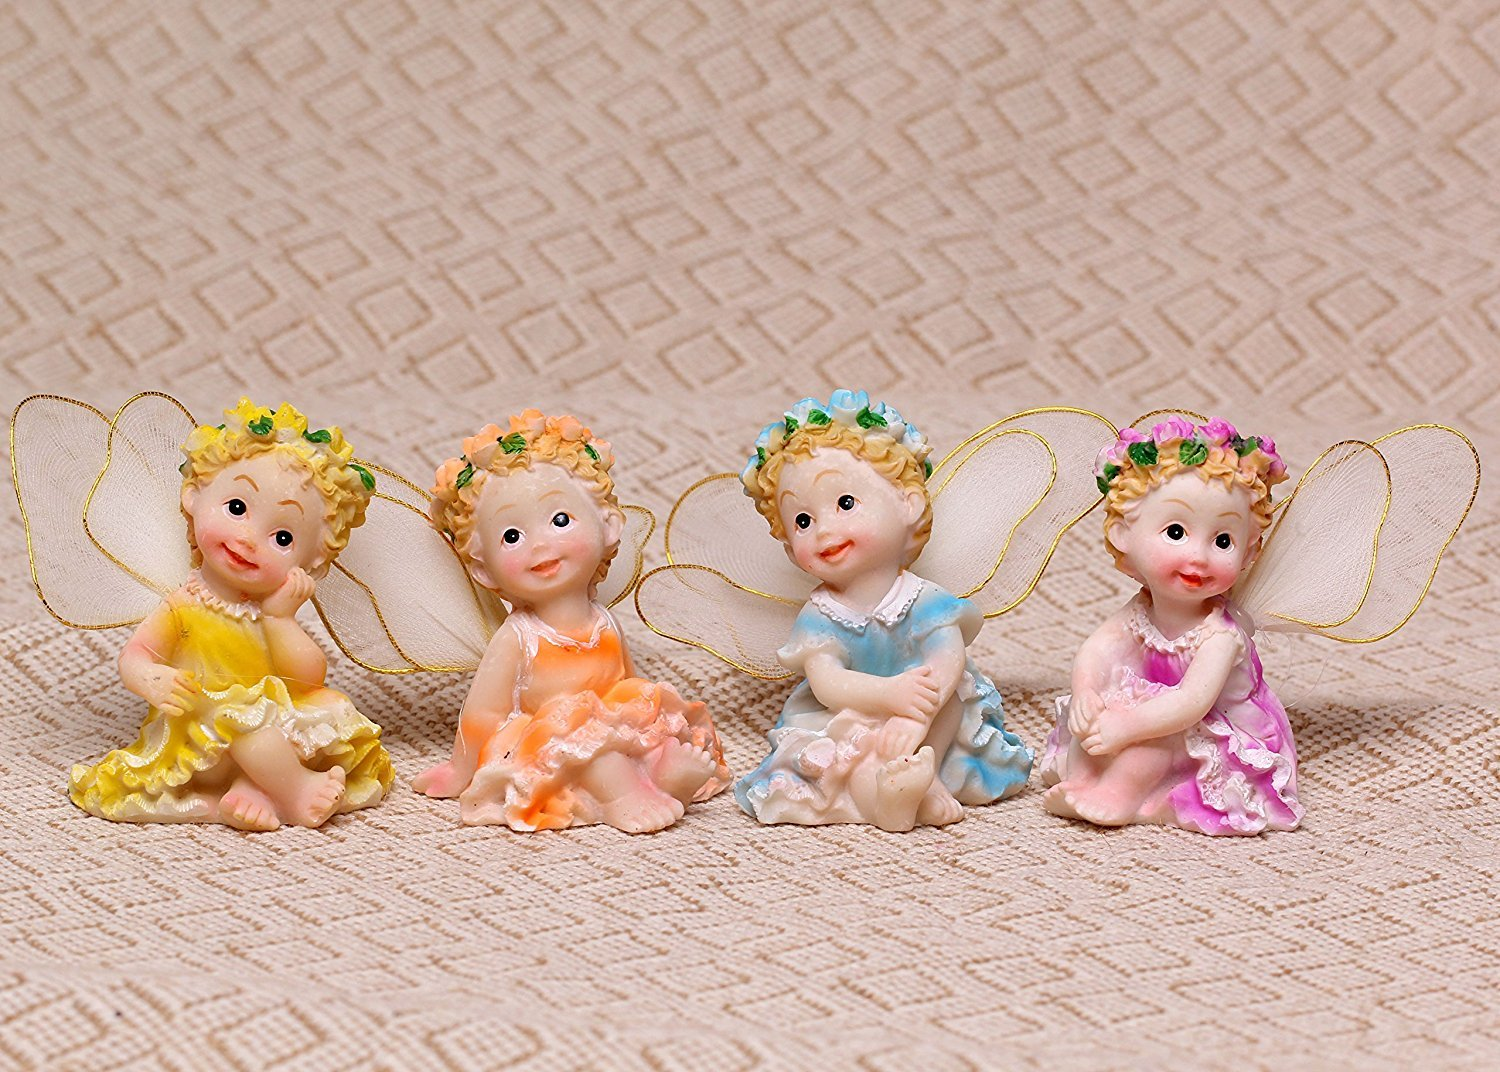 Tonsiki Resin Fairy Garden Ornament Home & Outdoor Decor Cute and Lovely Sitting Flower Fairies 4pcs Set by Tonsiki